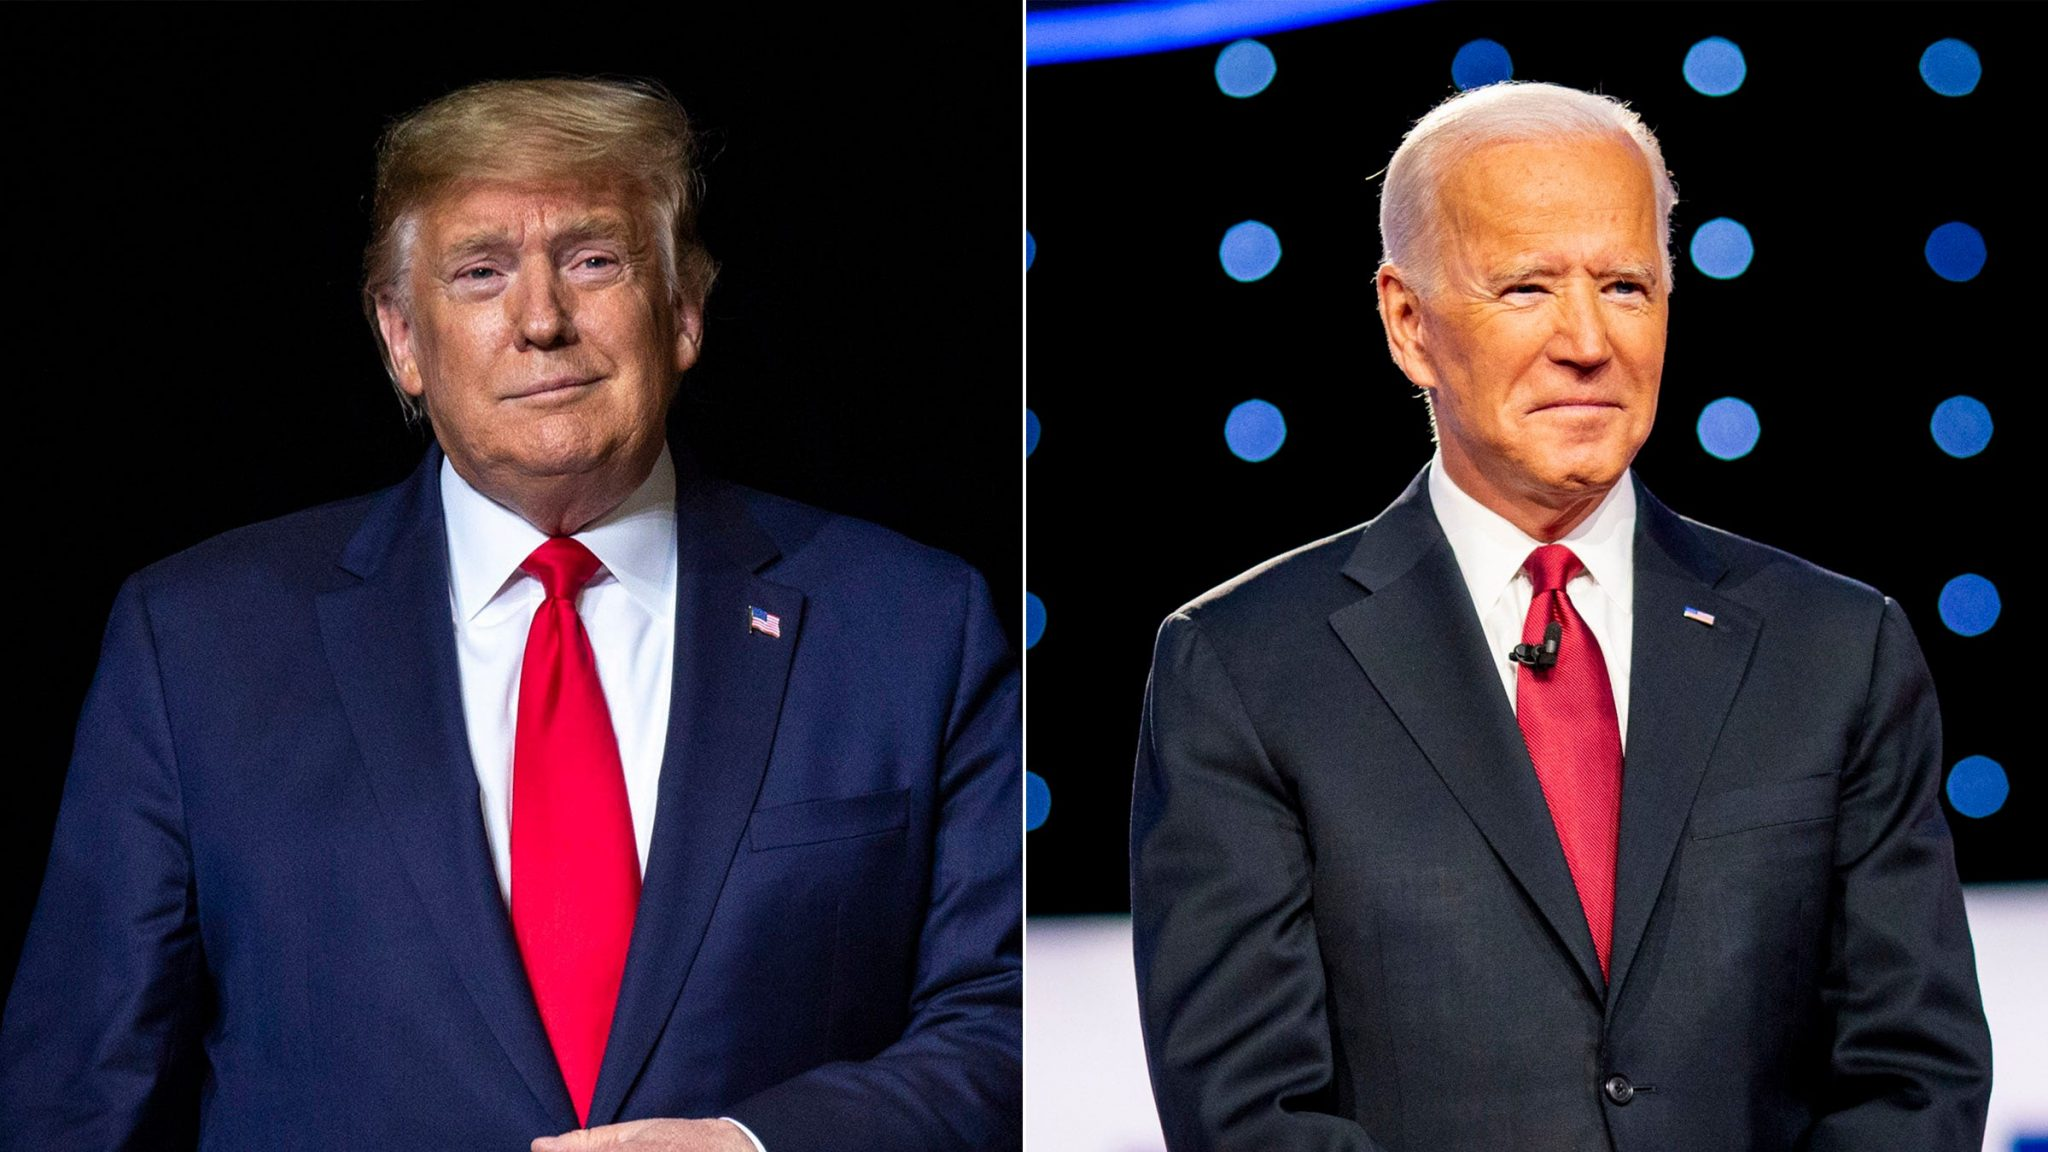 WHO's really in power??? WHO's really president??? Biden or…TRUMP???